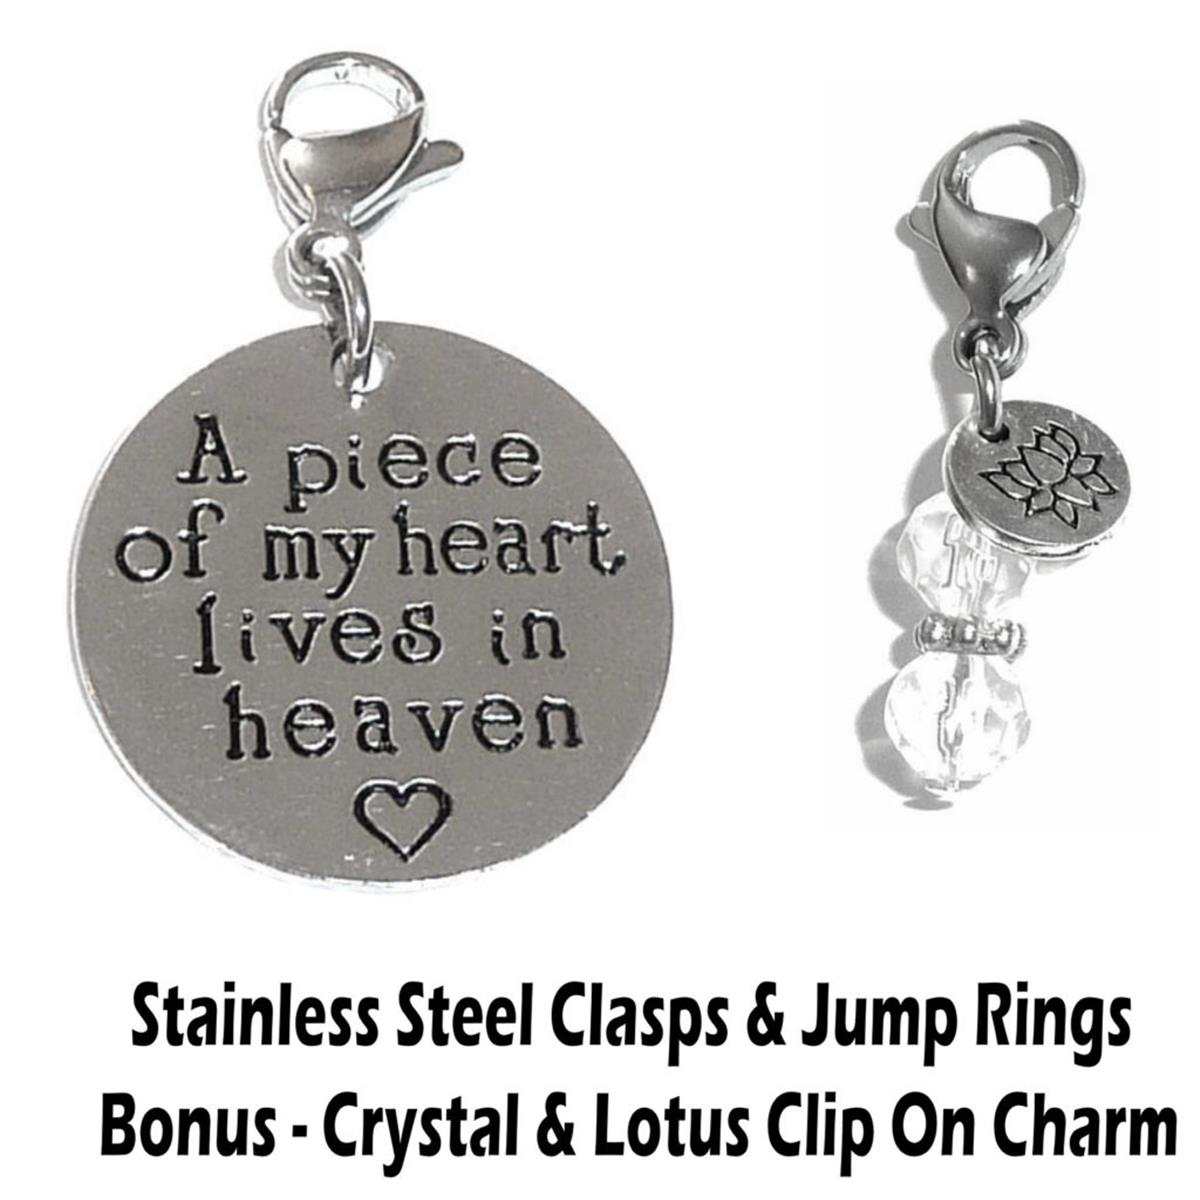 A piece of my heart lives in heaven clip on charm - inspirational charms